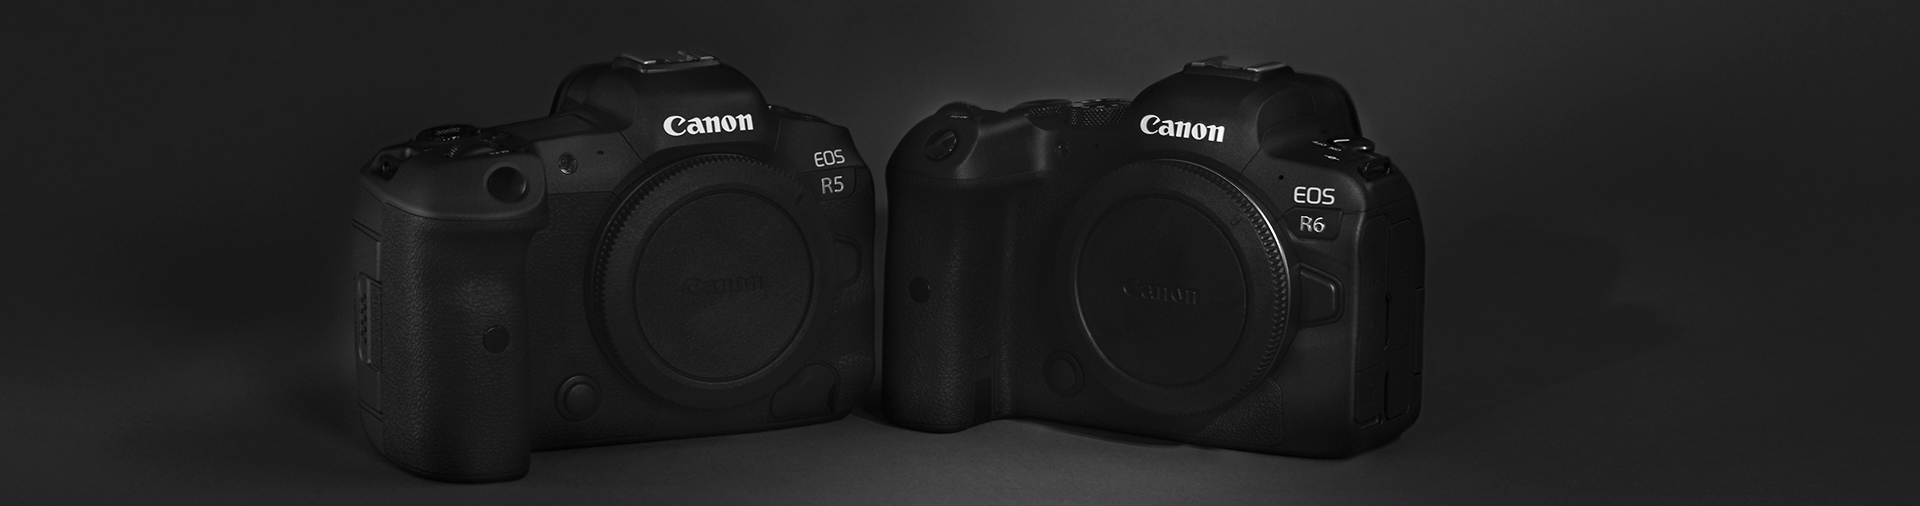 black-and-white-image-of-canon-eos-r5-and-r6-camera-bodies